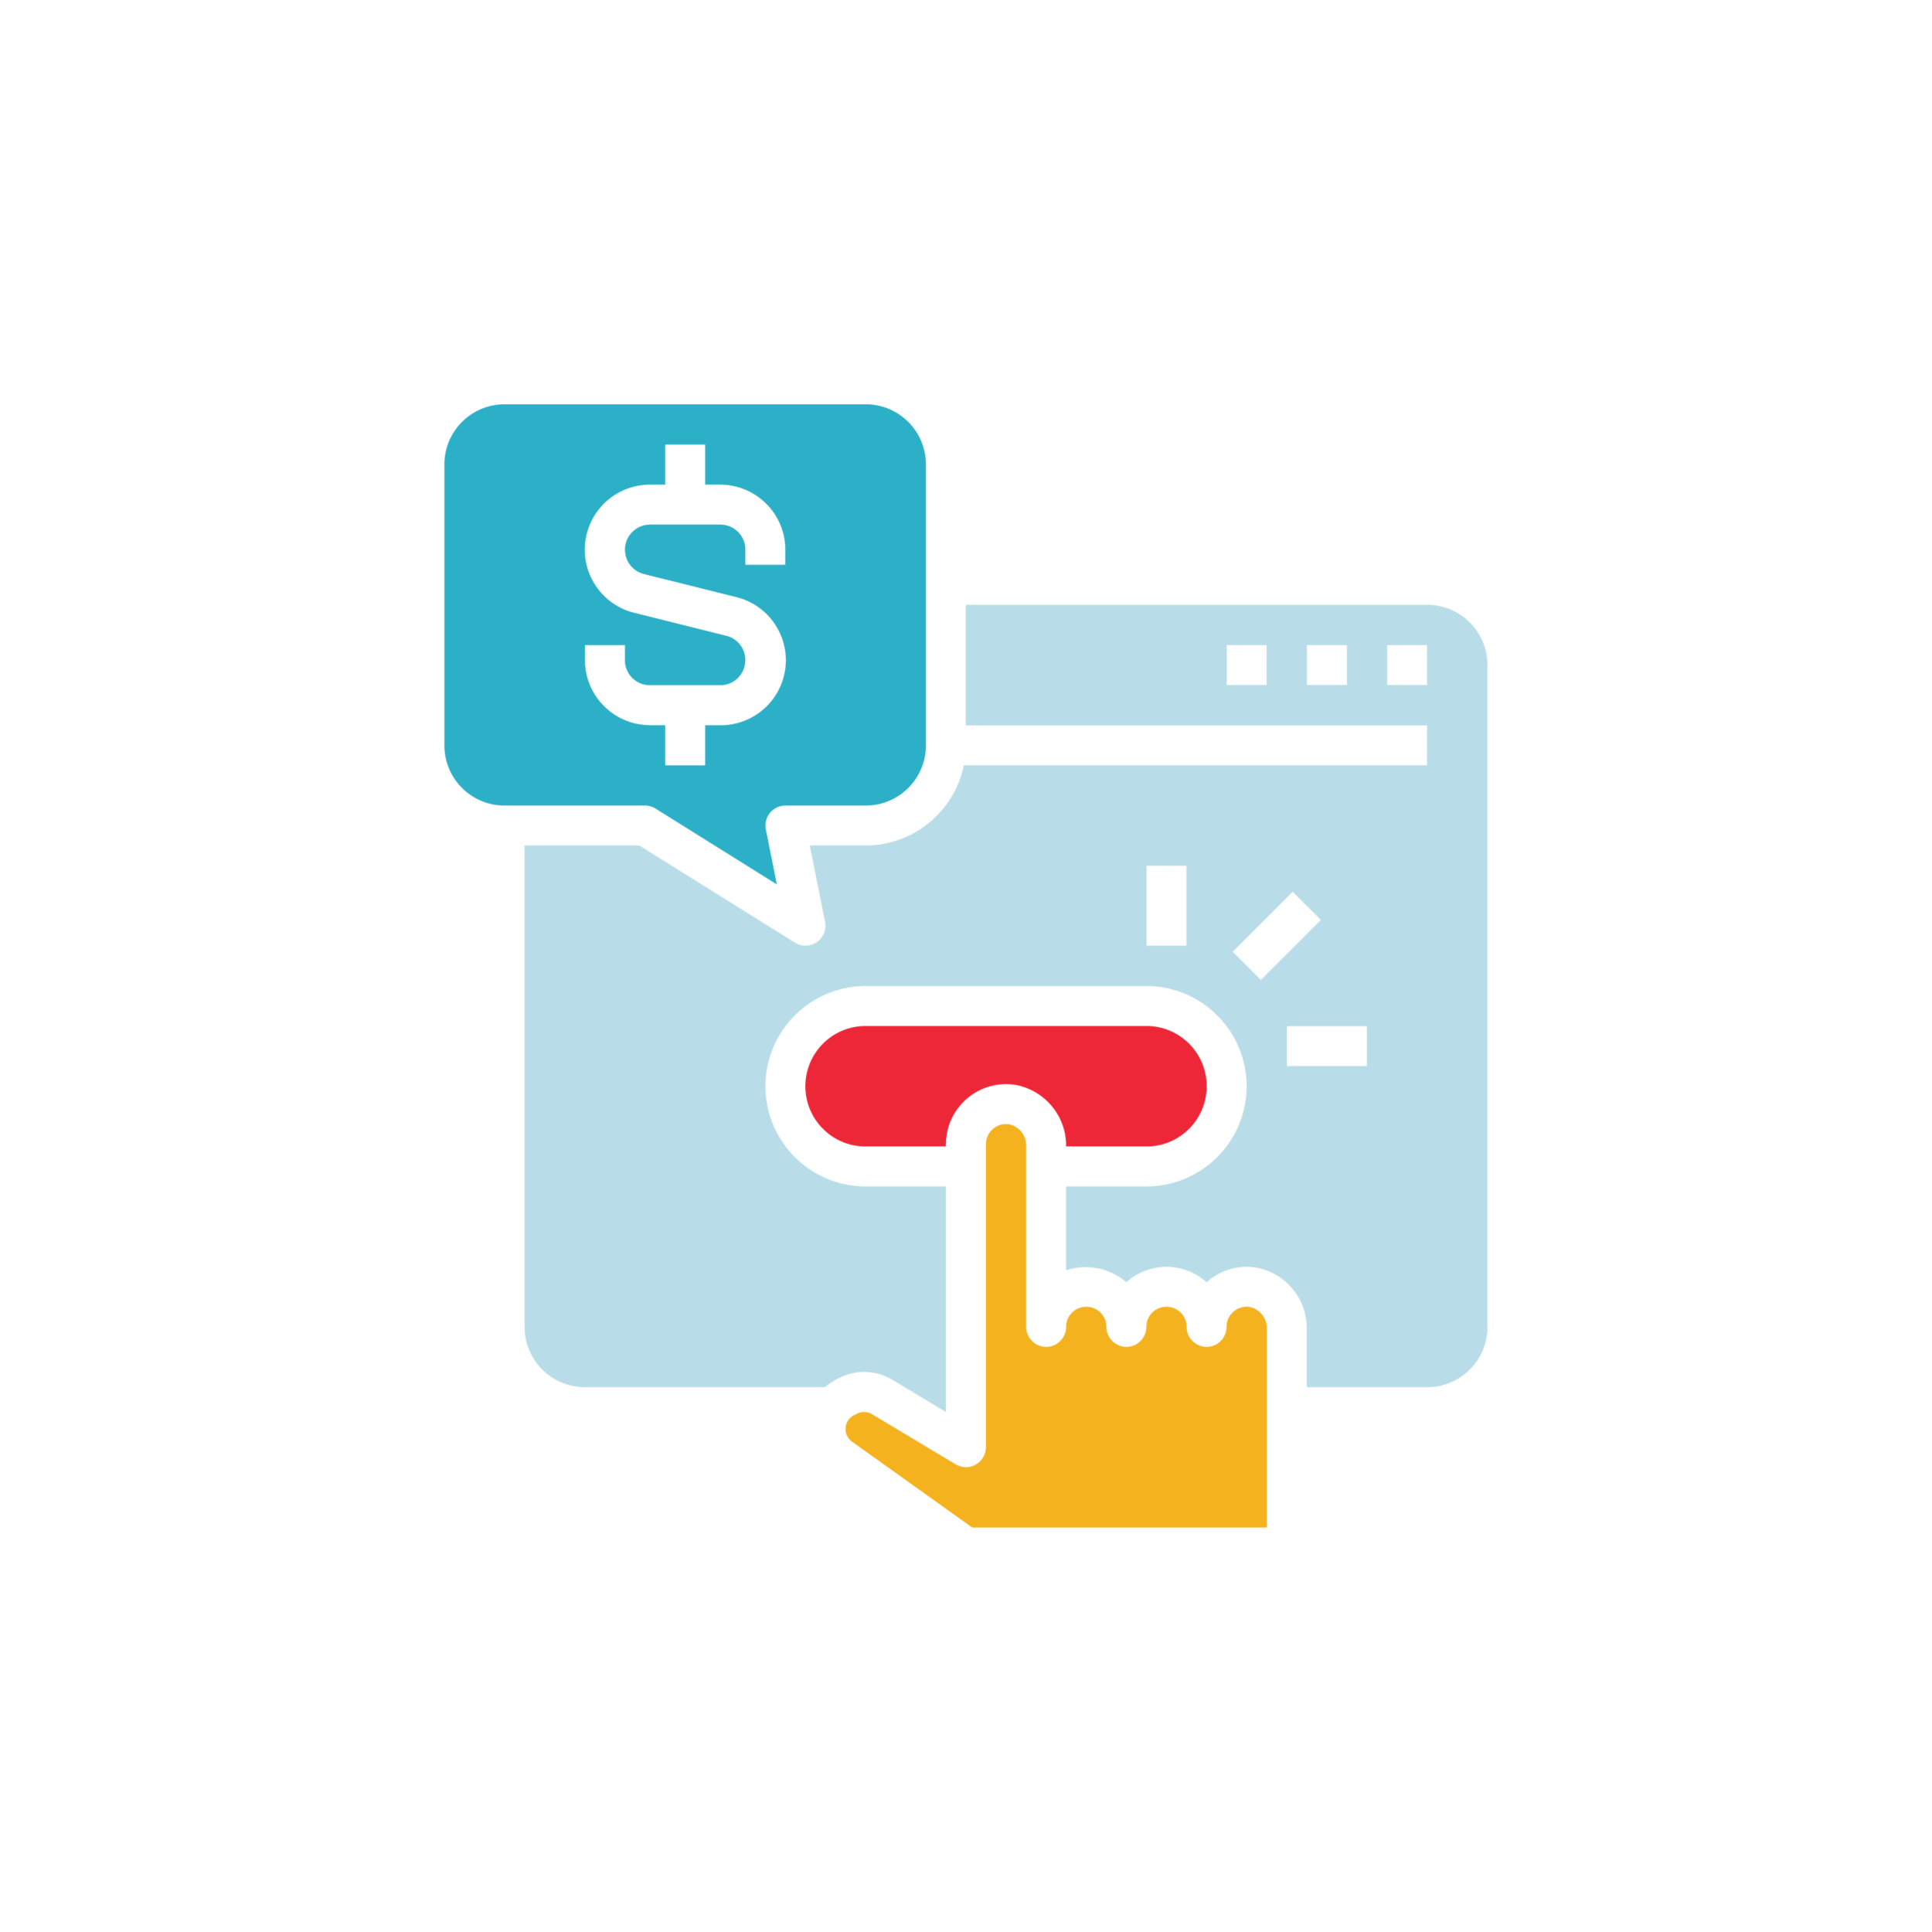 pay-as-you-go - No retainers or fixed-term contracts required. We work on a project basis, scaling solutions to fit your objectives and budget. Looking for a deal? Talk to us about bundling our services to gain economies of scale.